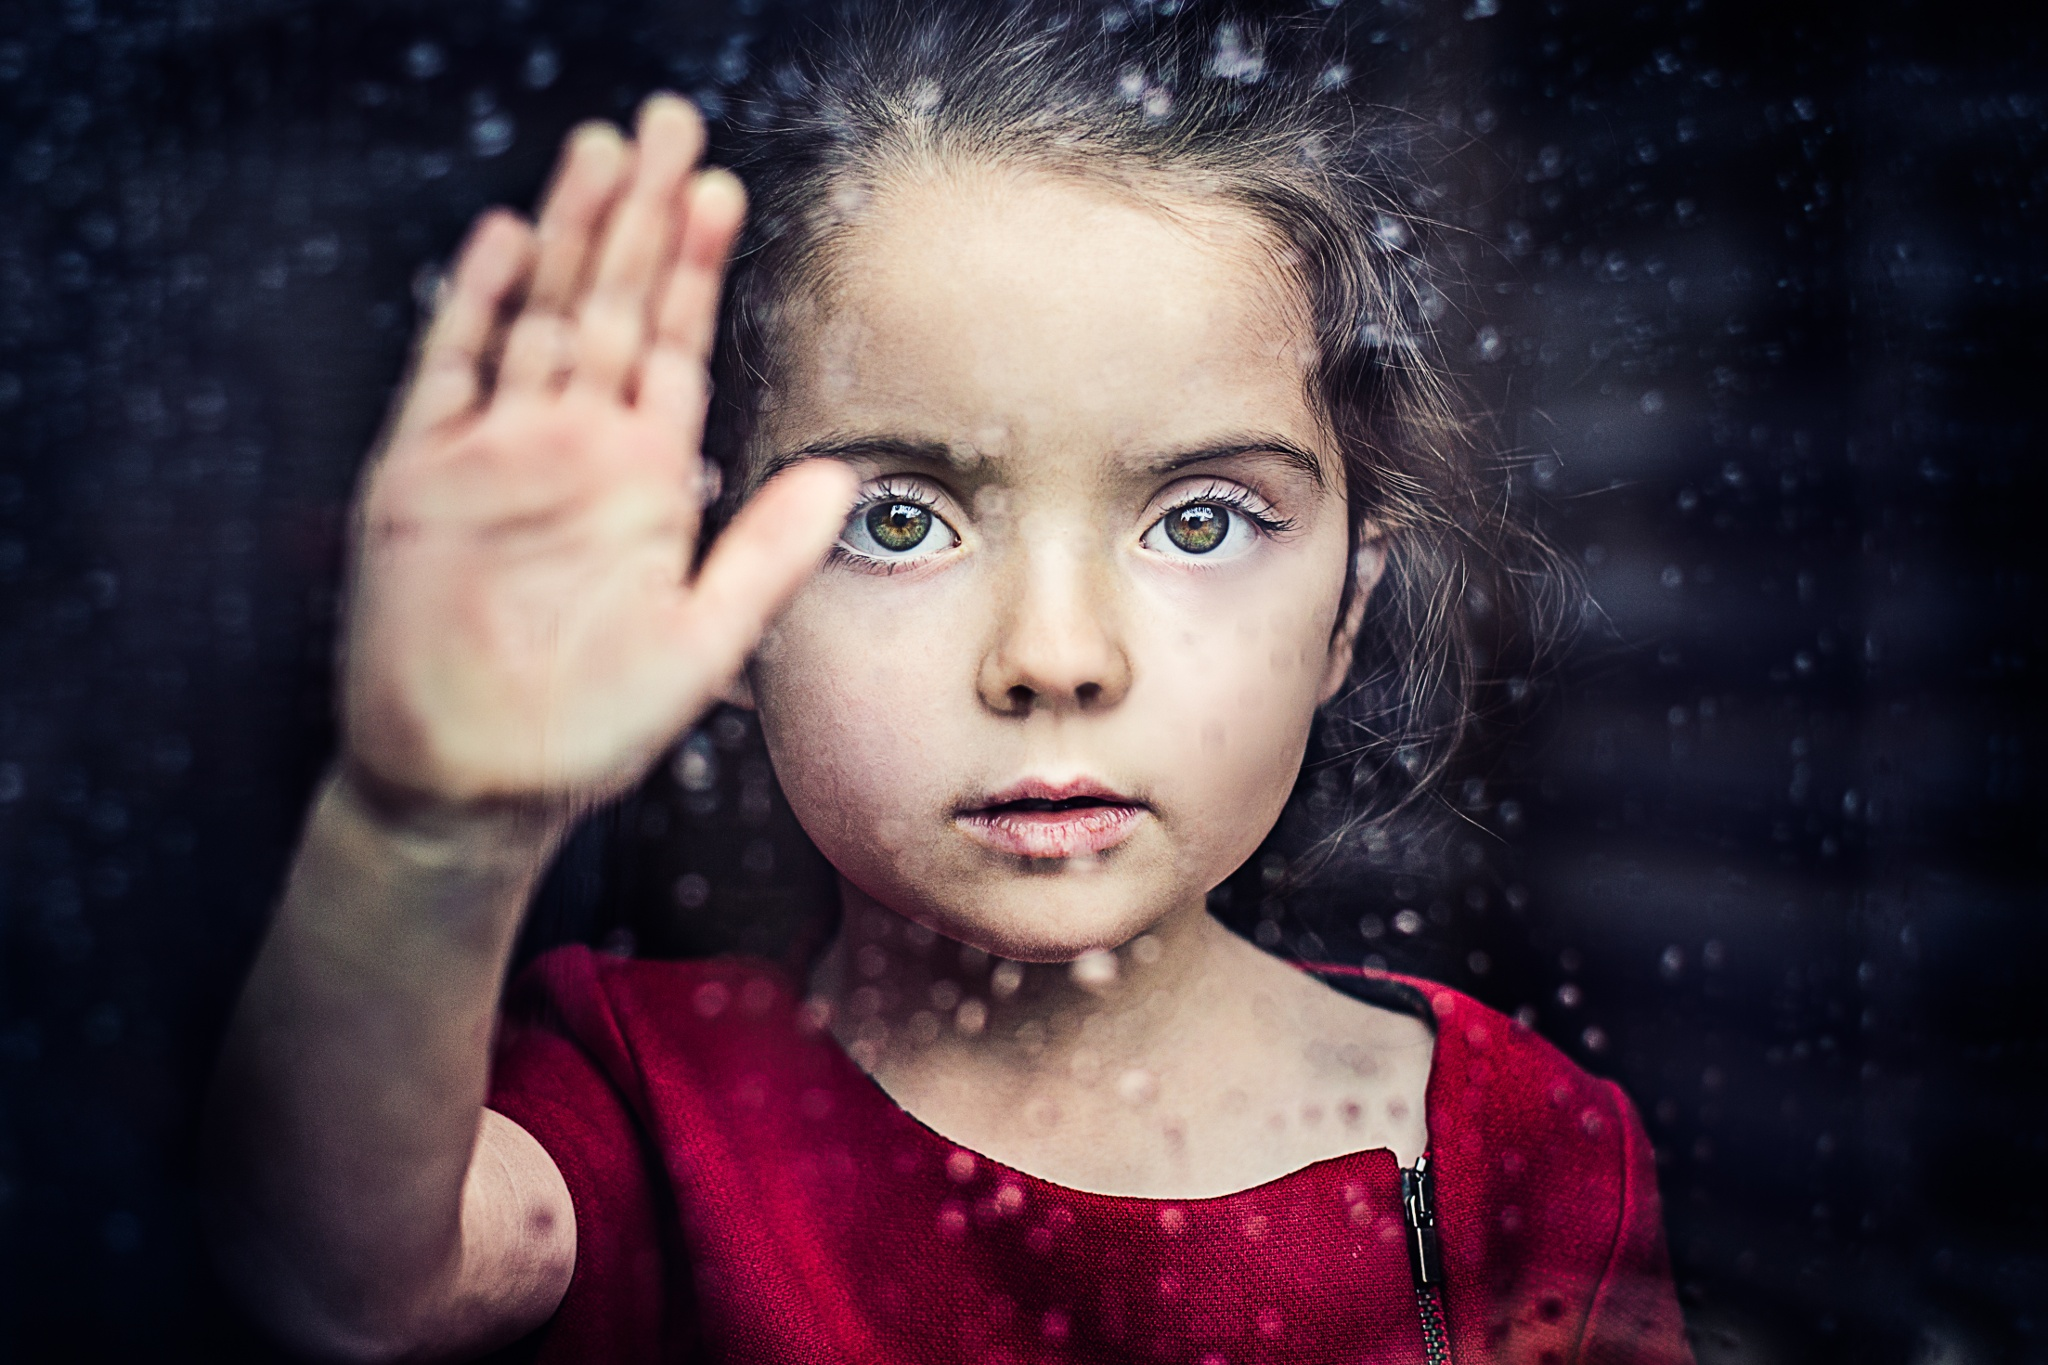 500px Blog » The passionate photographer community. » A Day in the ...